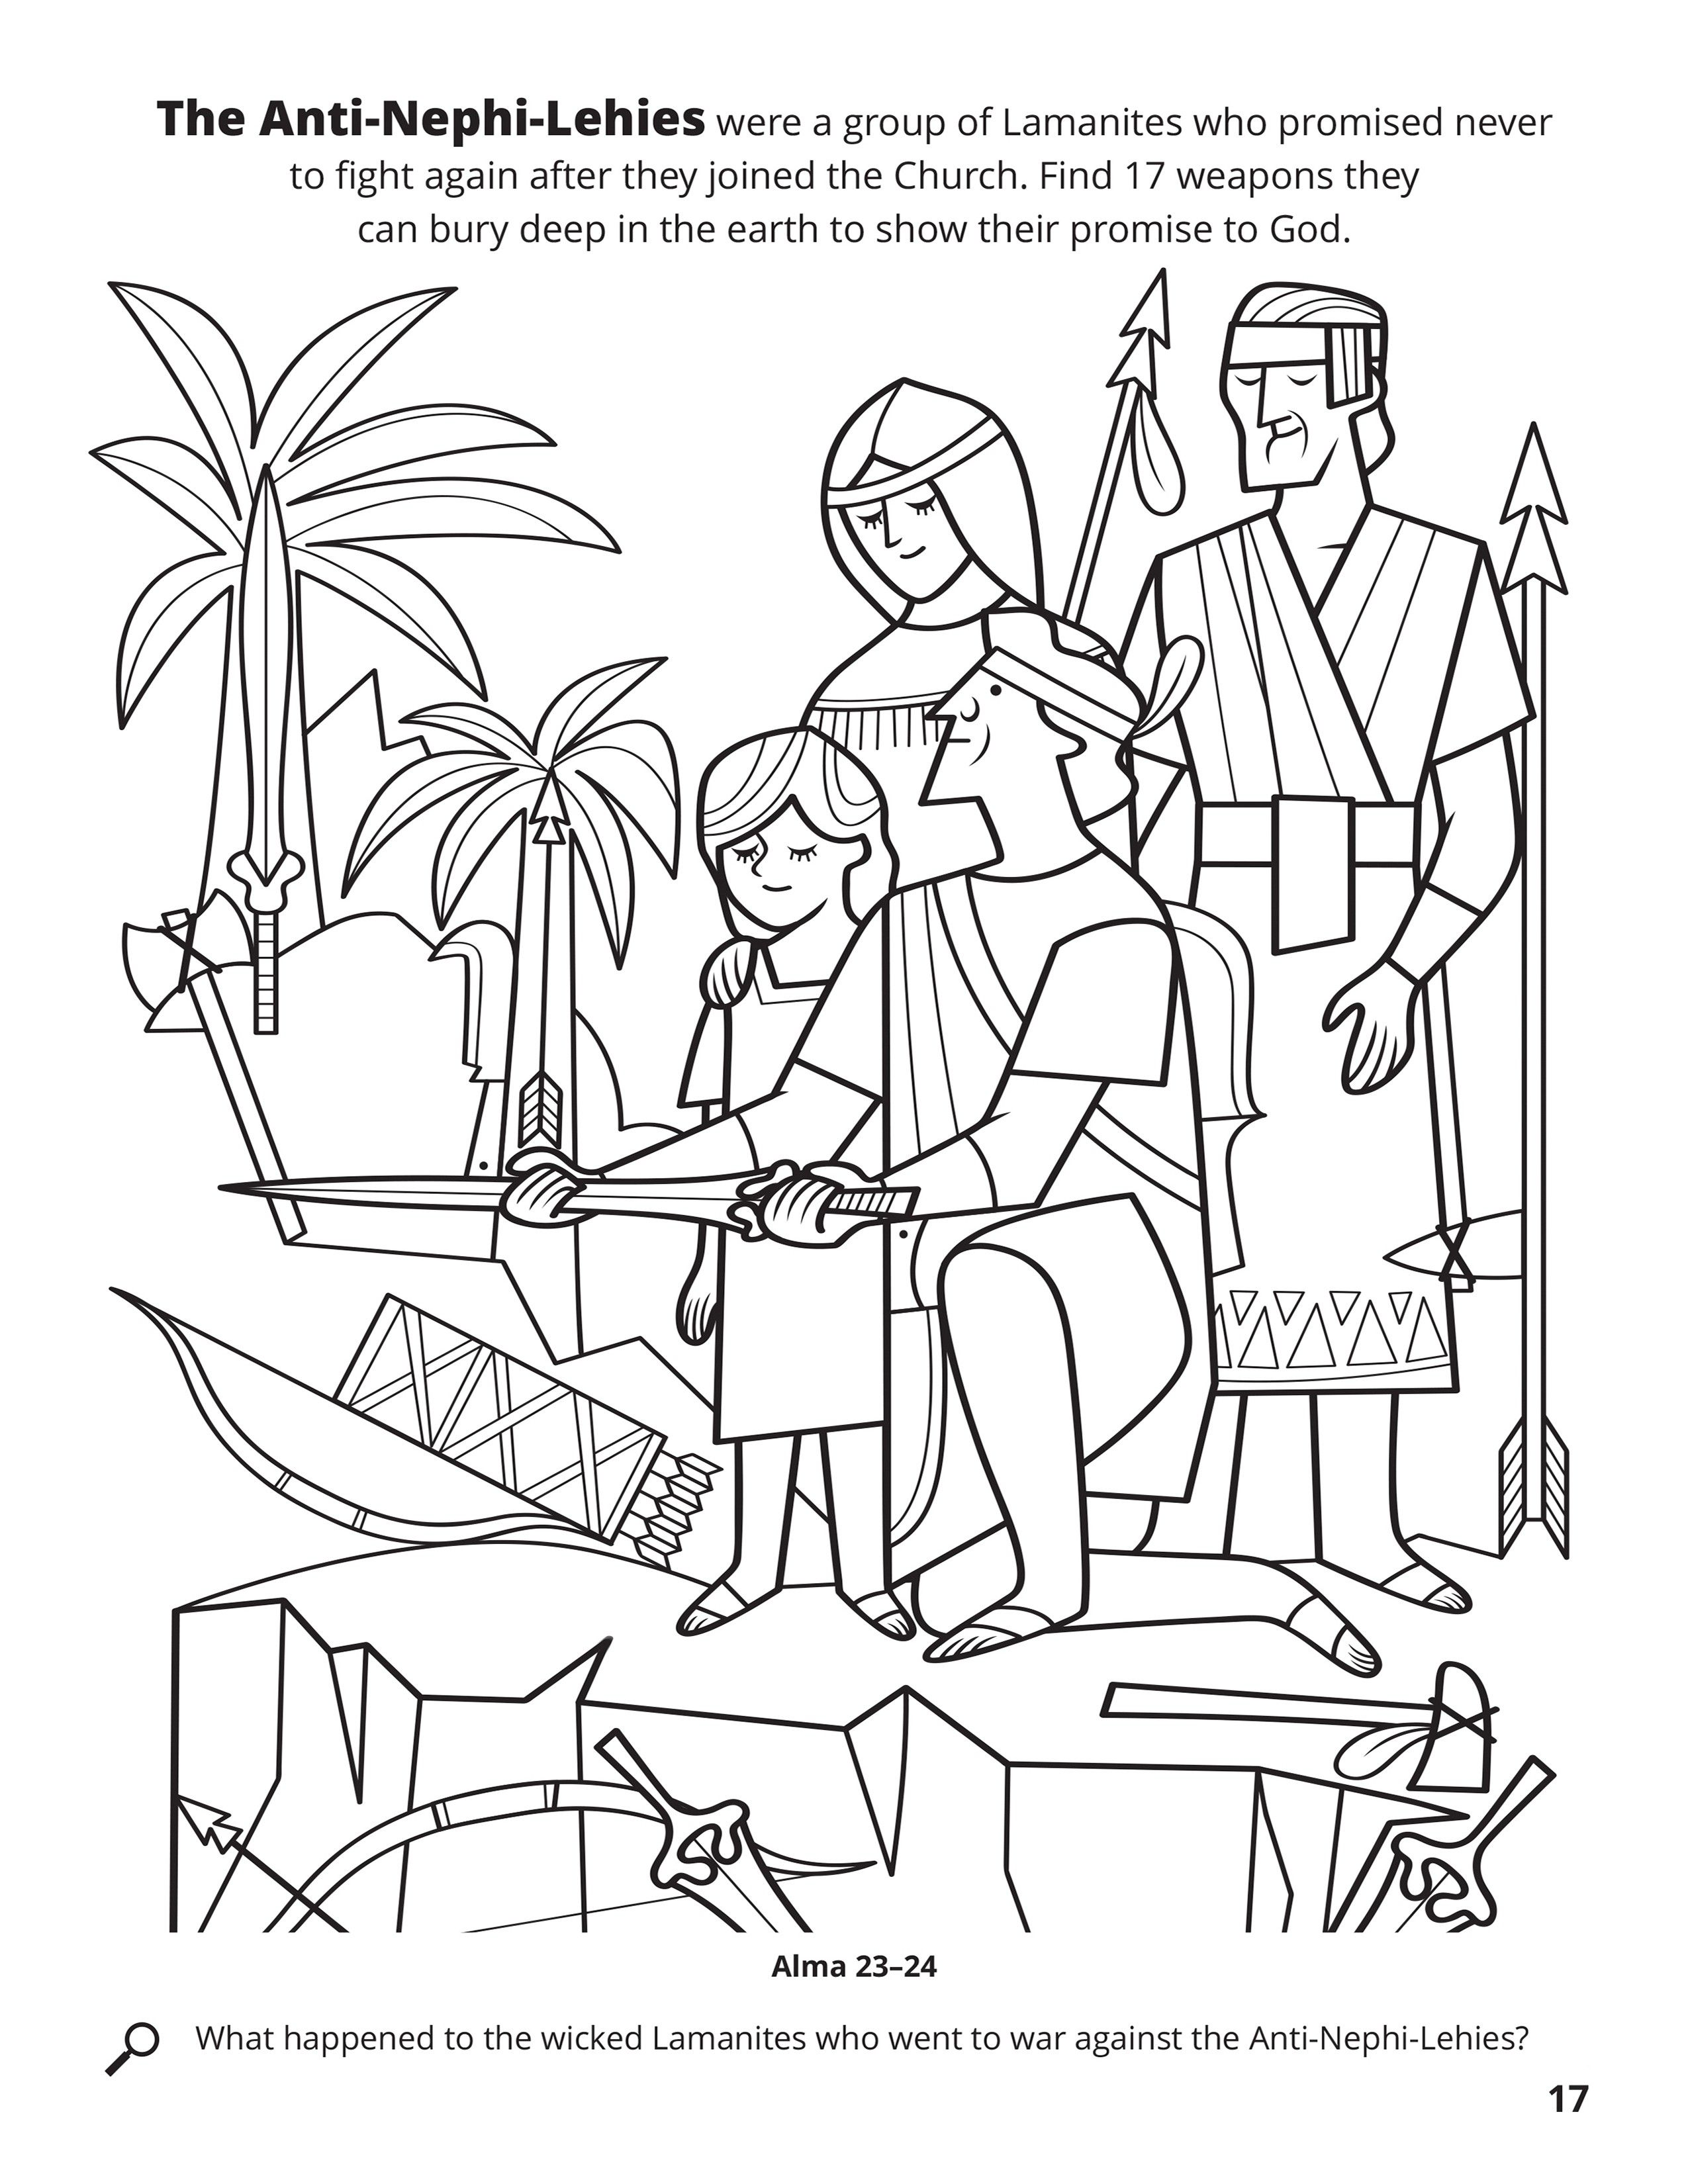 Nephi Coloring Page : nephi, coloring, Anti-Nephi-Lehies, Their, Weapons